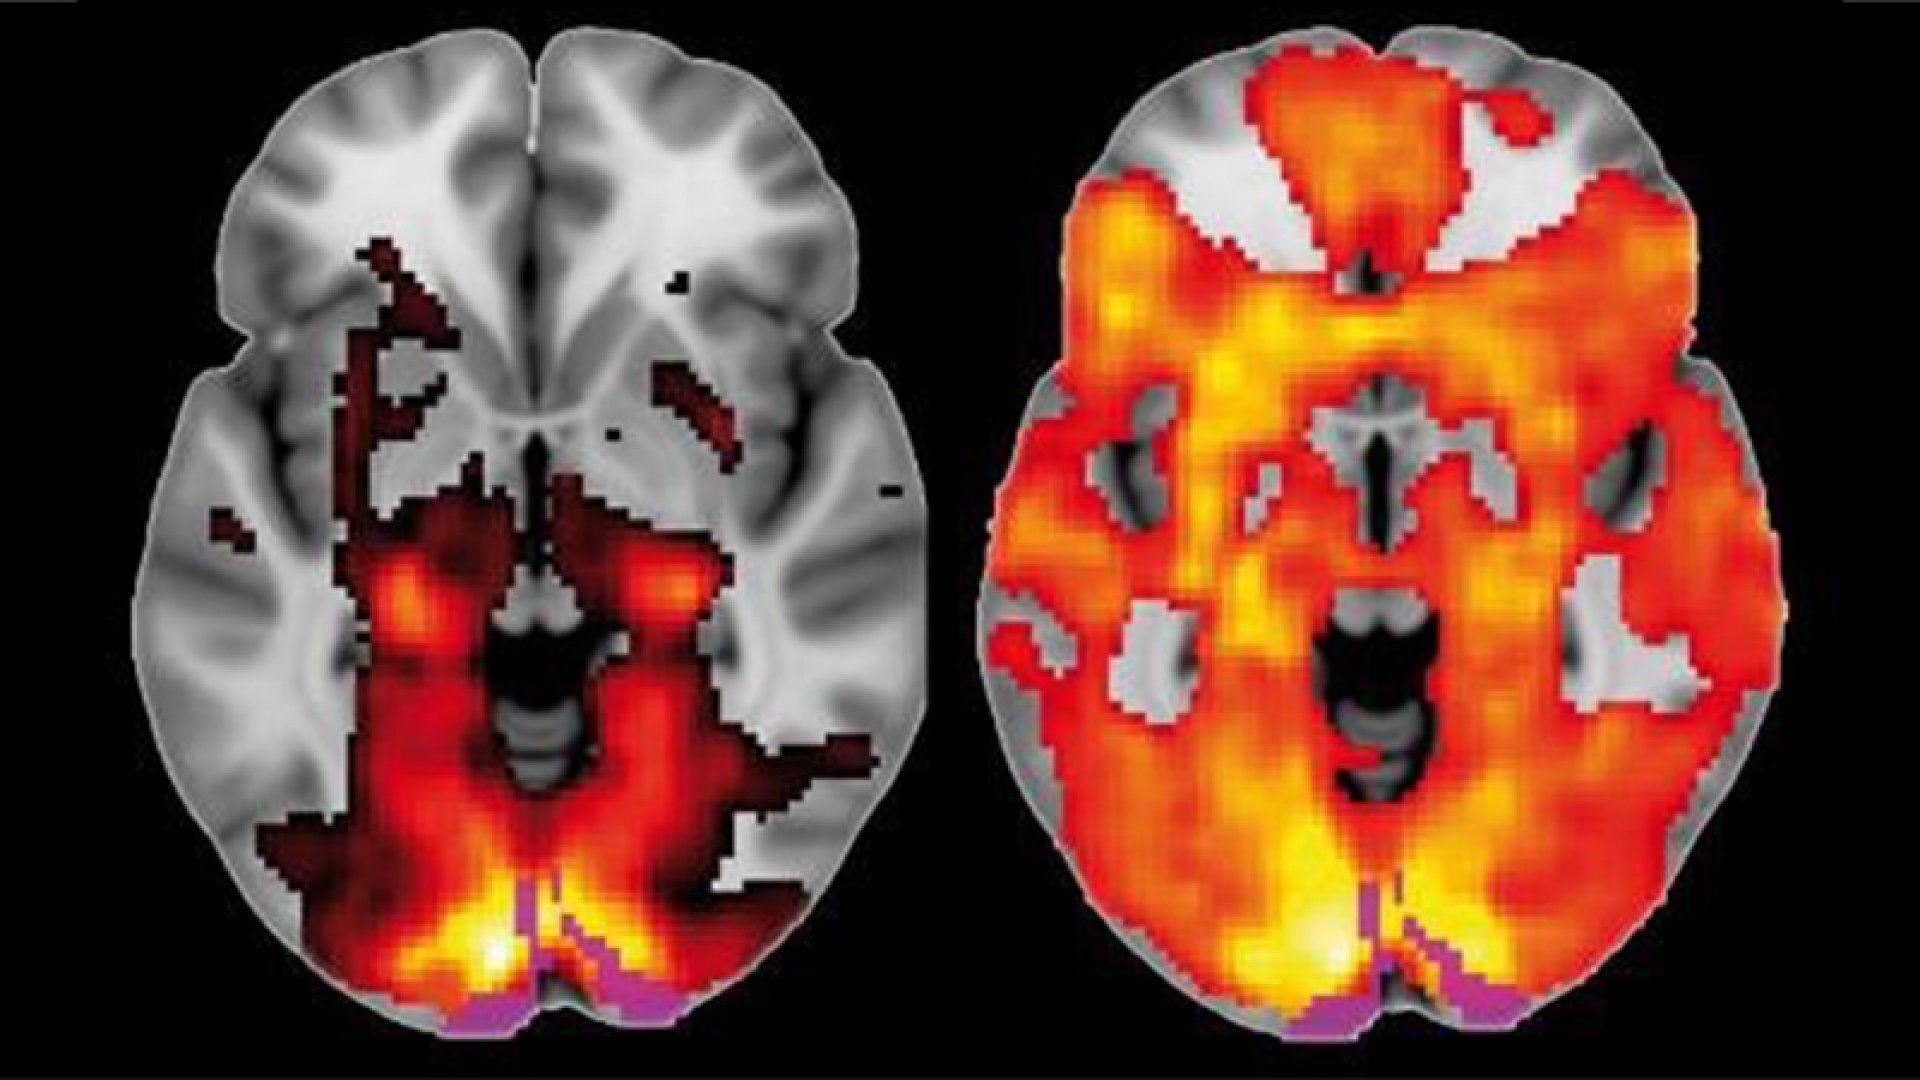 Brain scan images show how a brain on LSD (on the right) has increased blood flow and electrical activity.